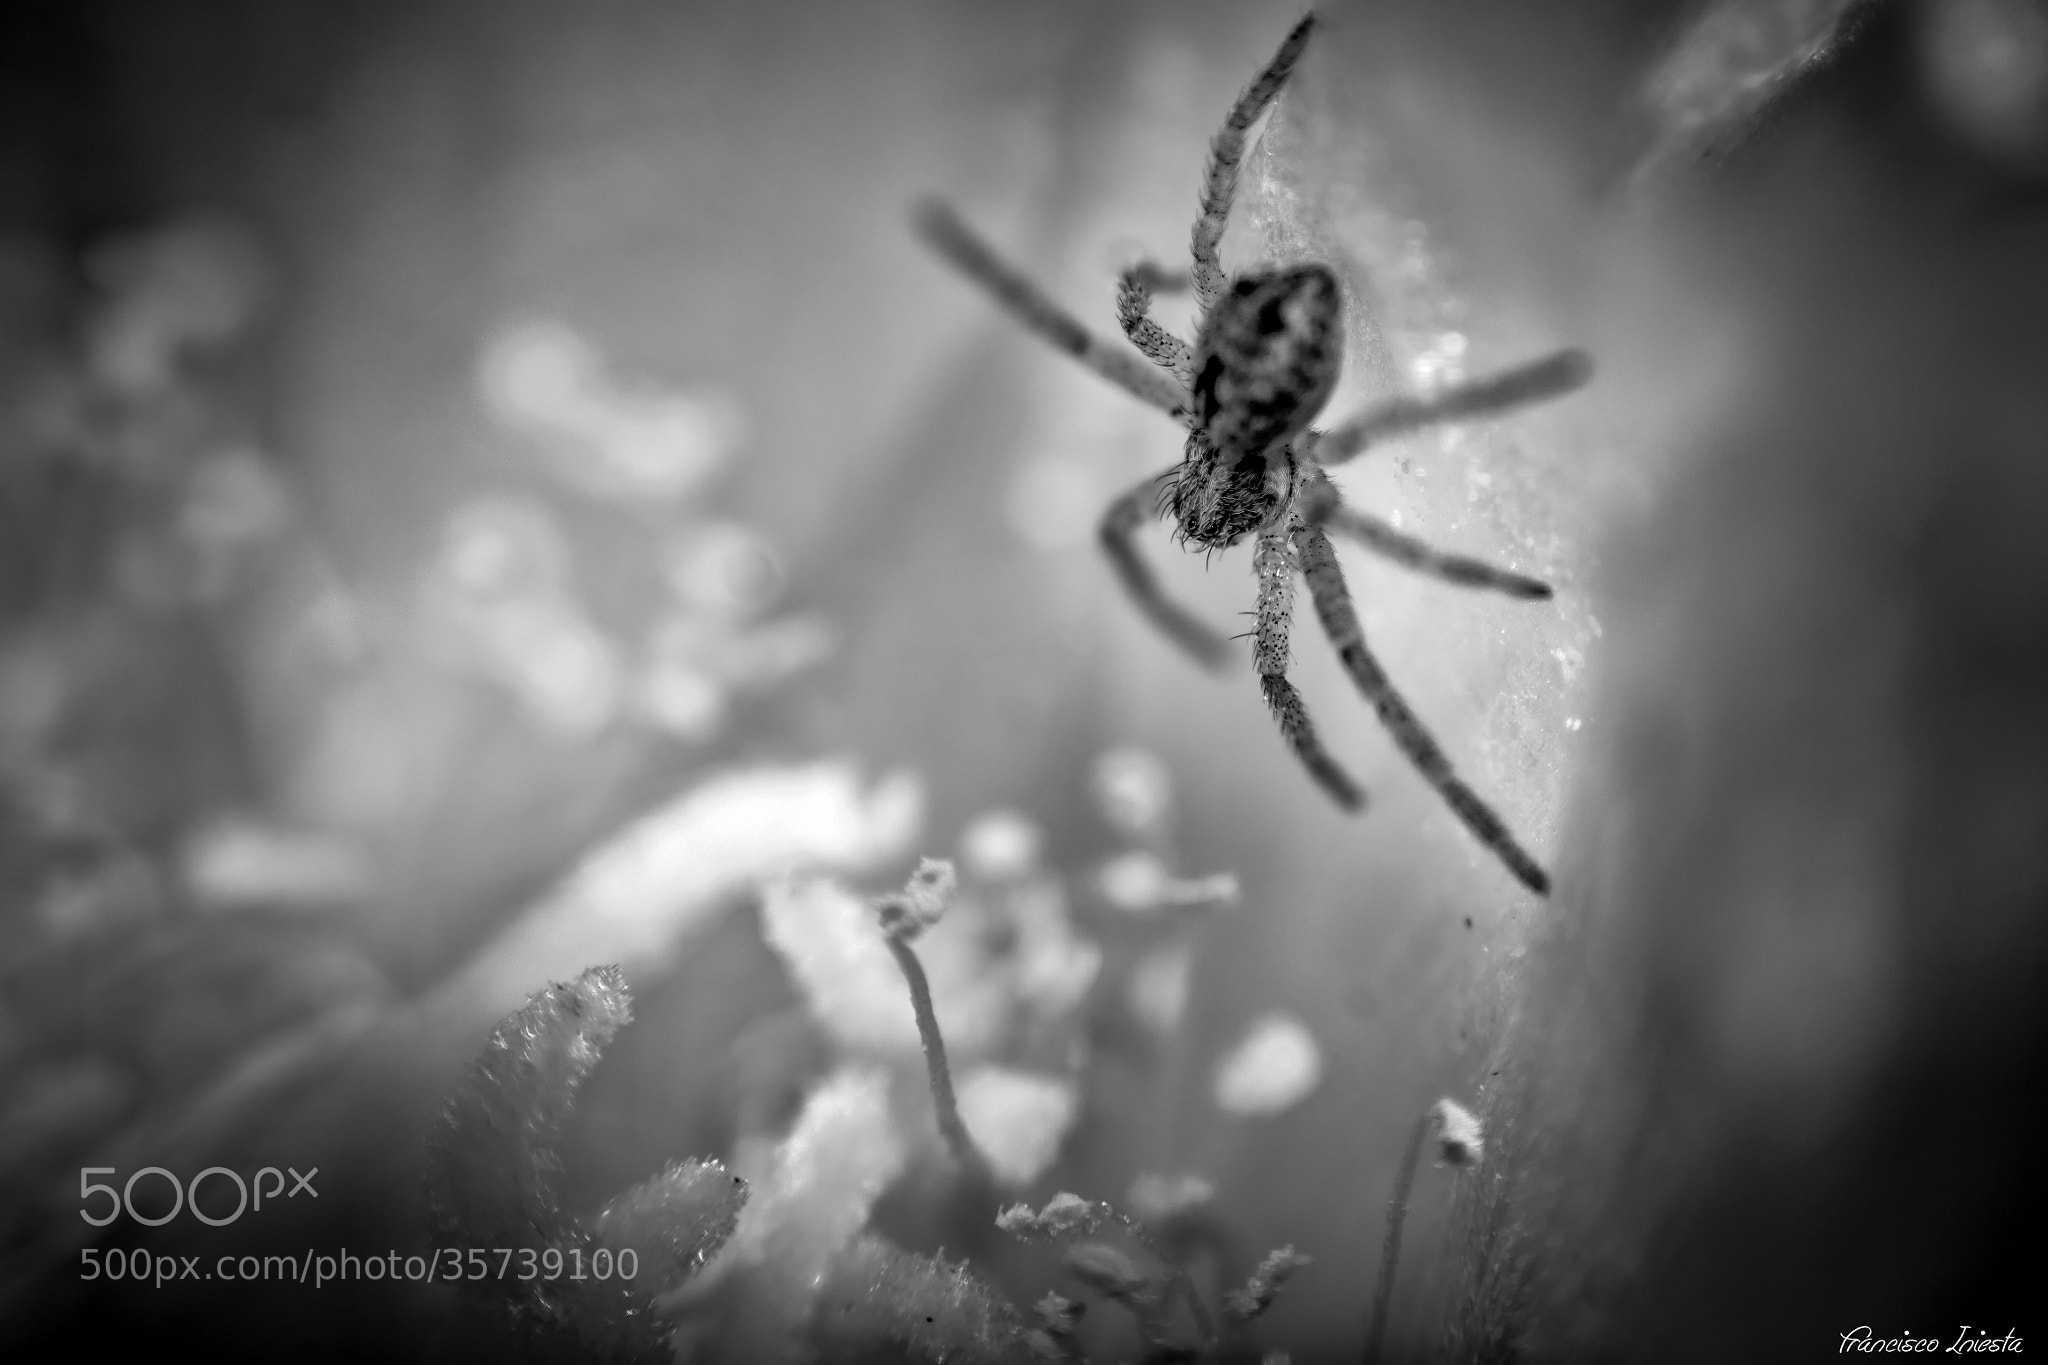 Photograph Mini Spider by Francisco Iniesta on 500px